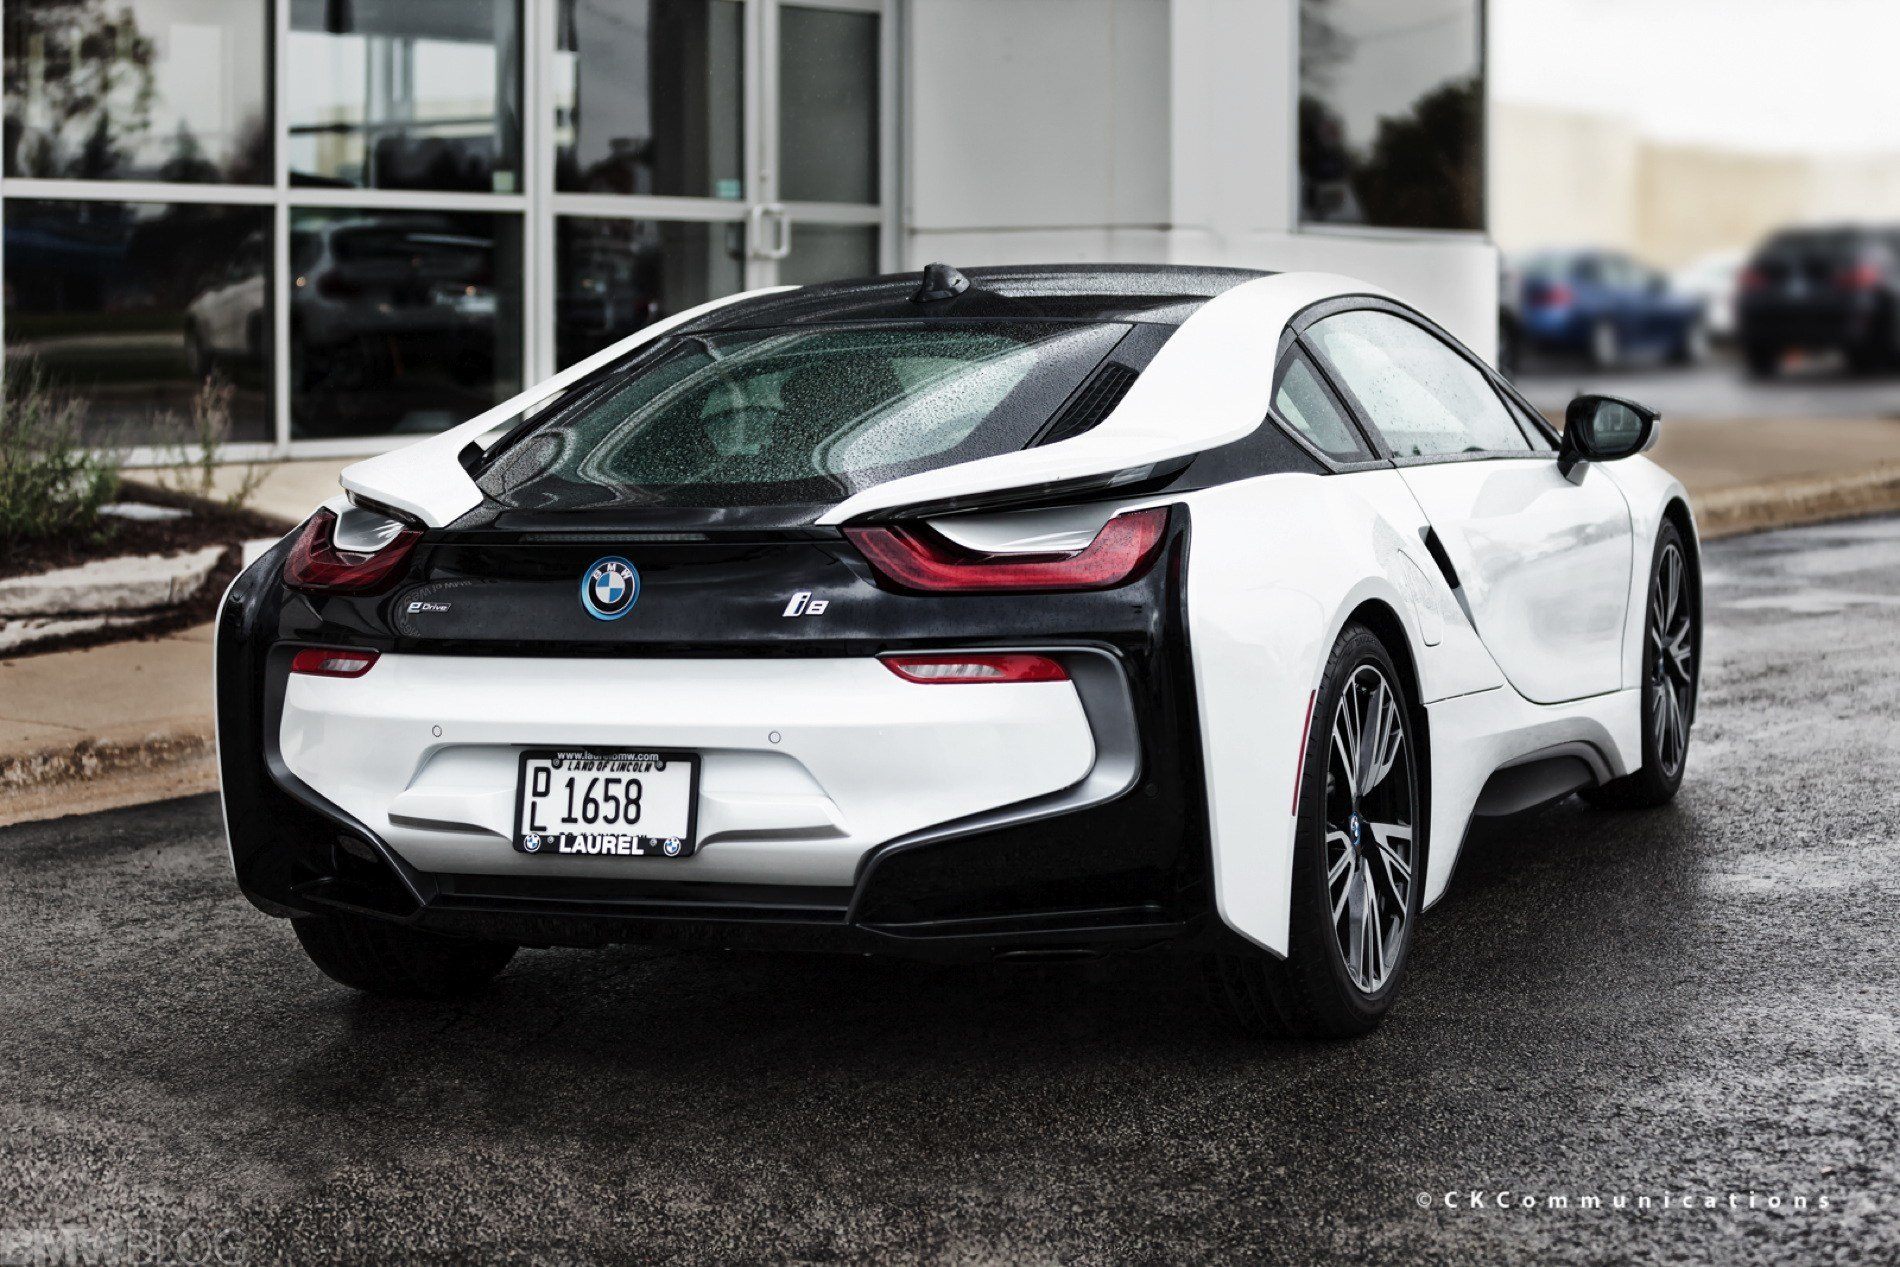 Latest Bmw I8 Images Free Download